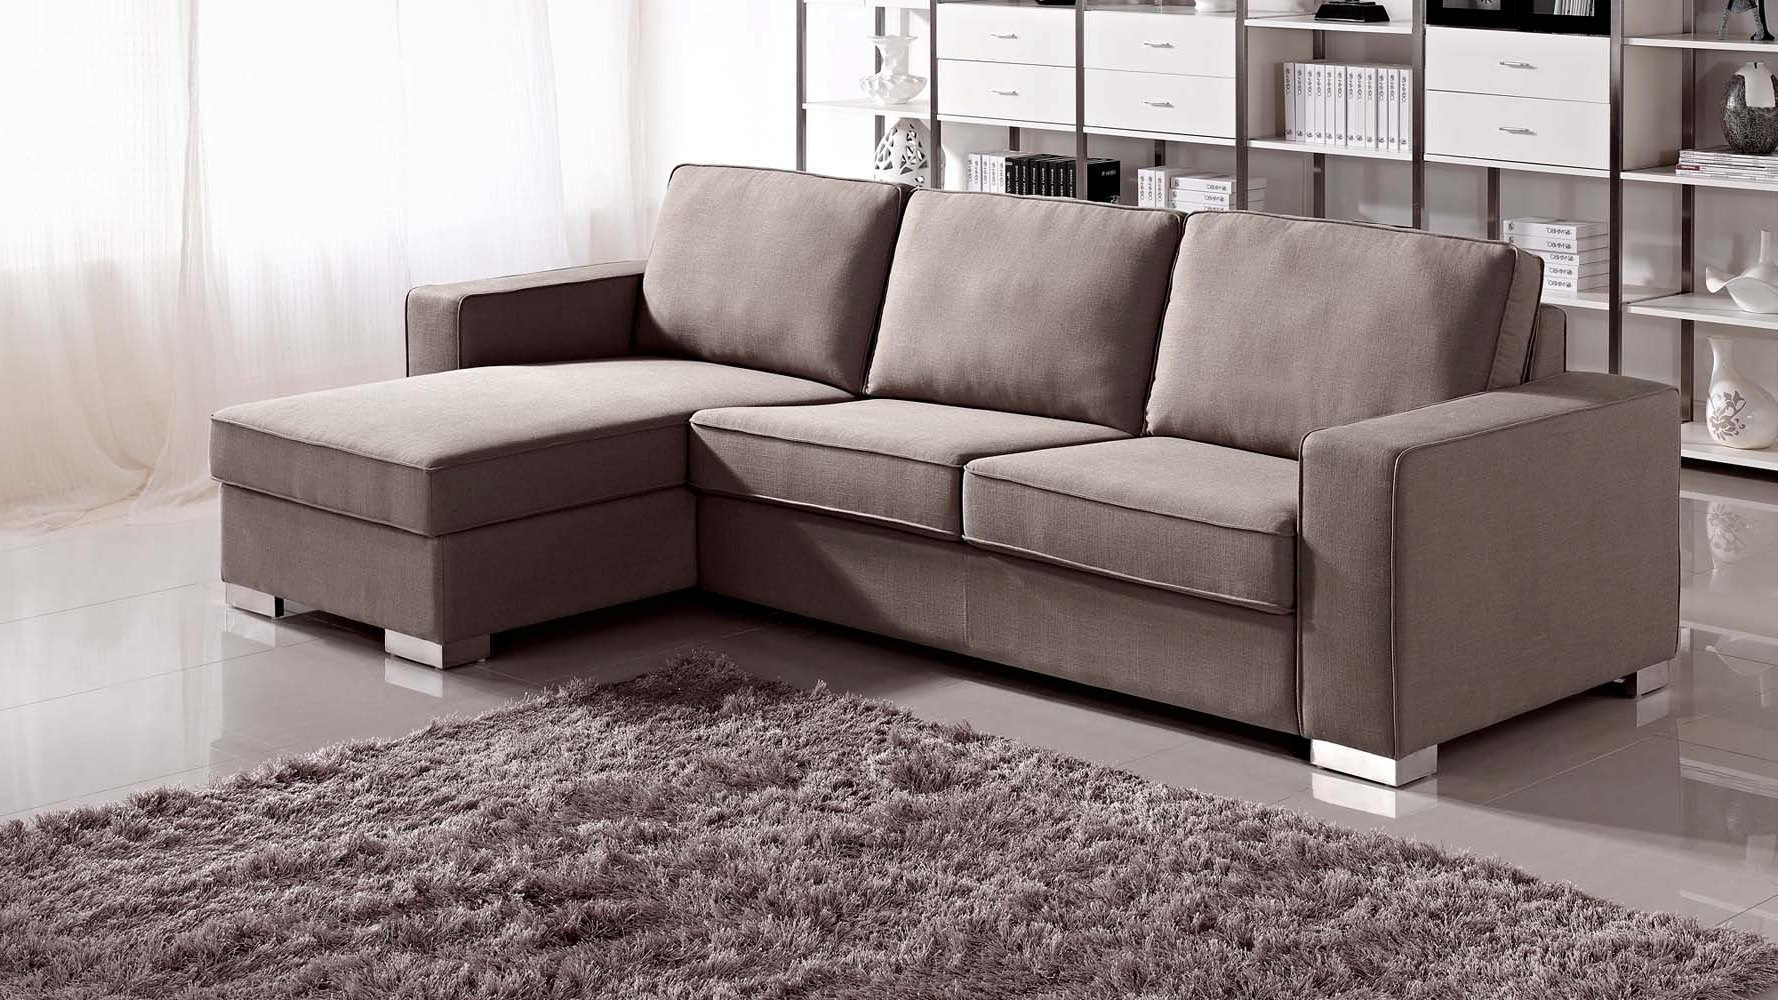 Sears Sectional Sofa | Sears Sectional Sofa Canada | Sears Sectional In Sectional Sofas At Sears (View 8 of 10)